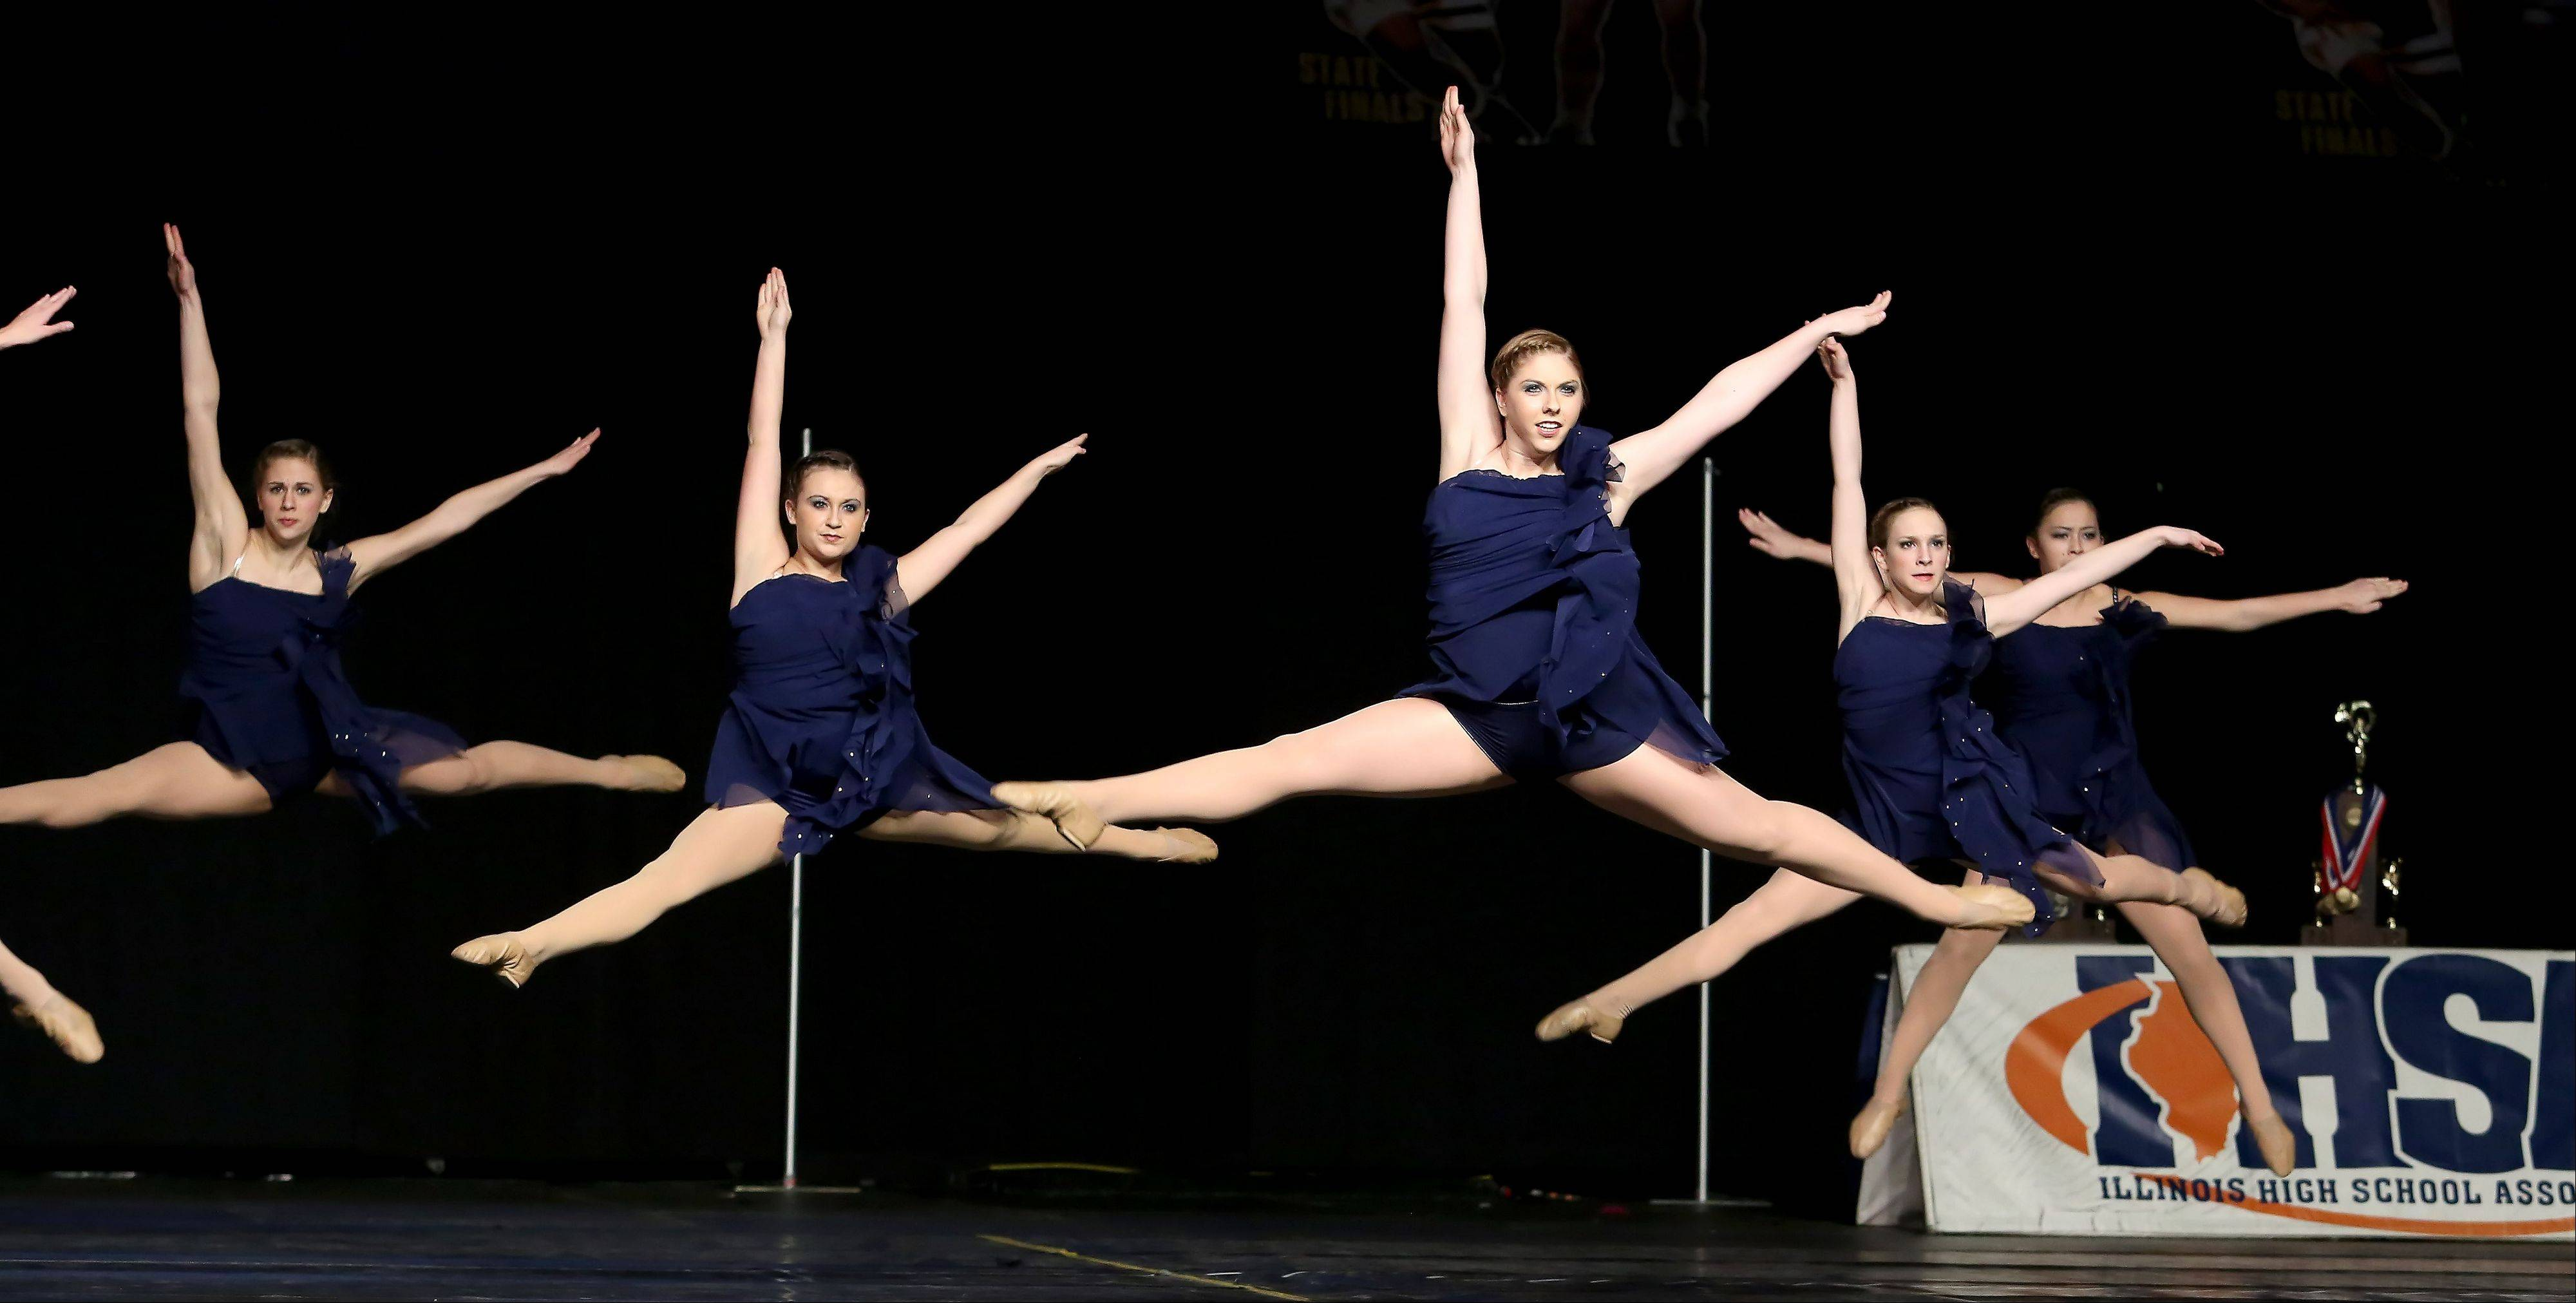 Naperville North competes in the 3A division of the Competitive Dance State Preliminaries on Friday in Bloomington.